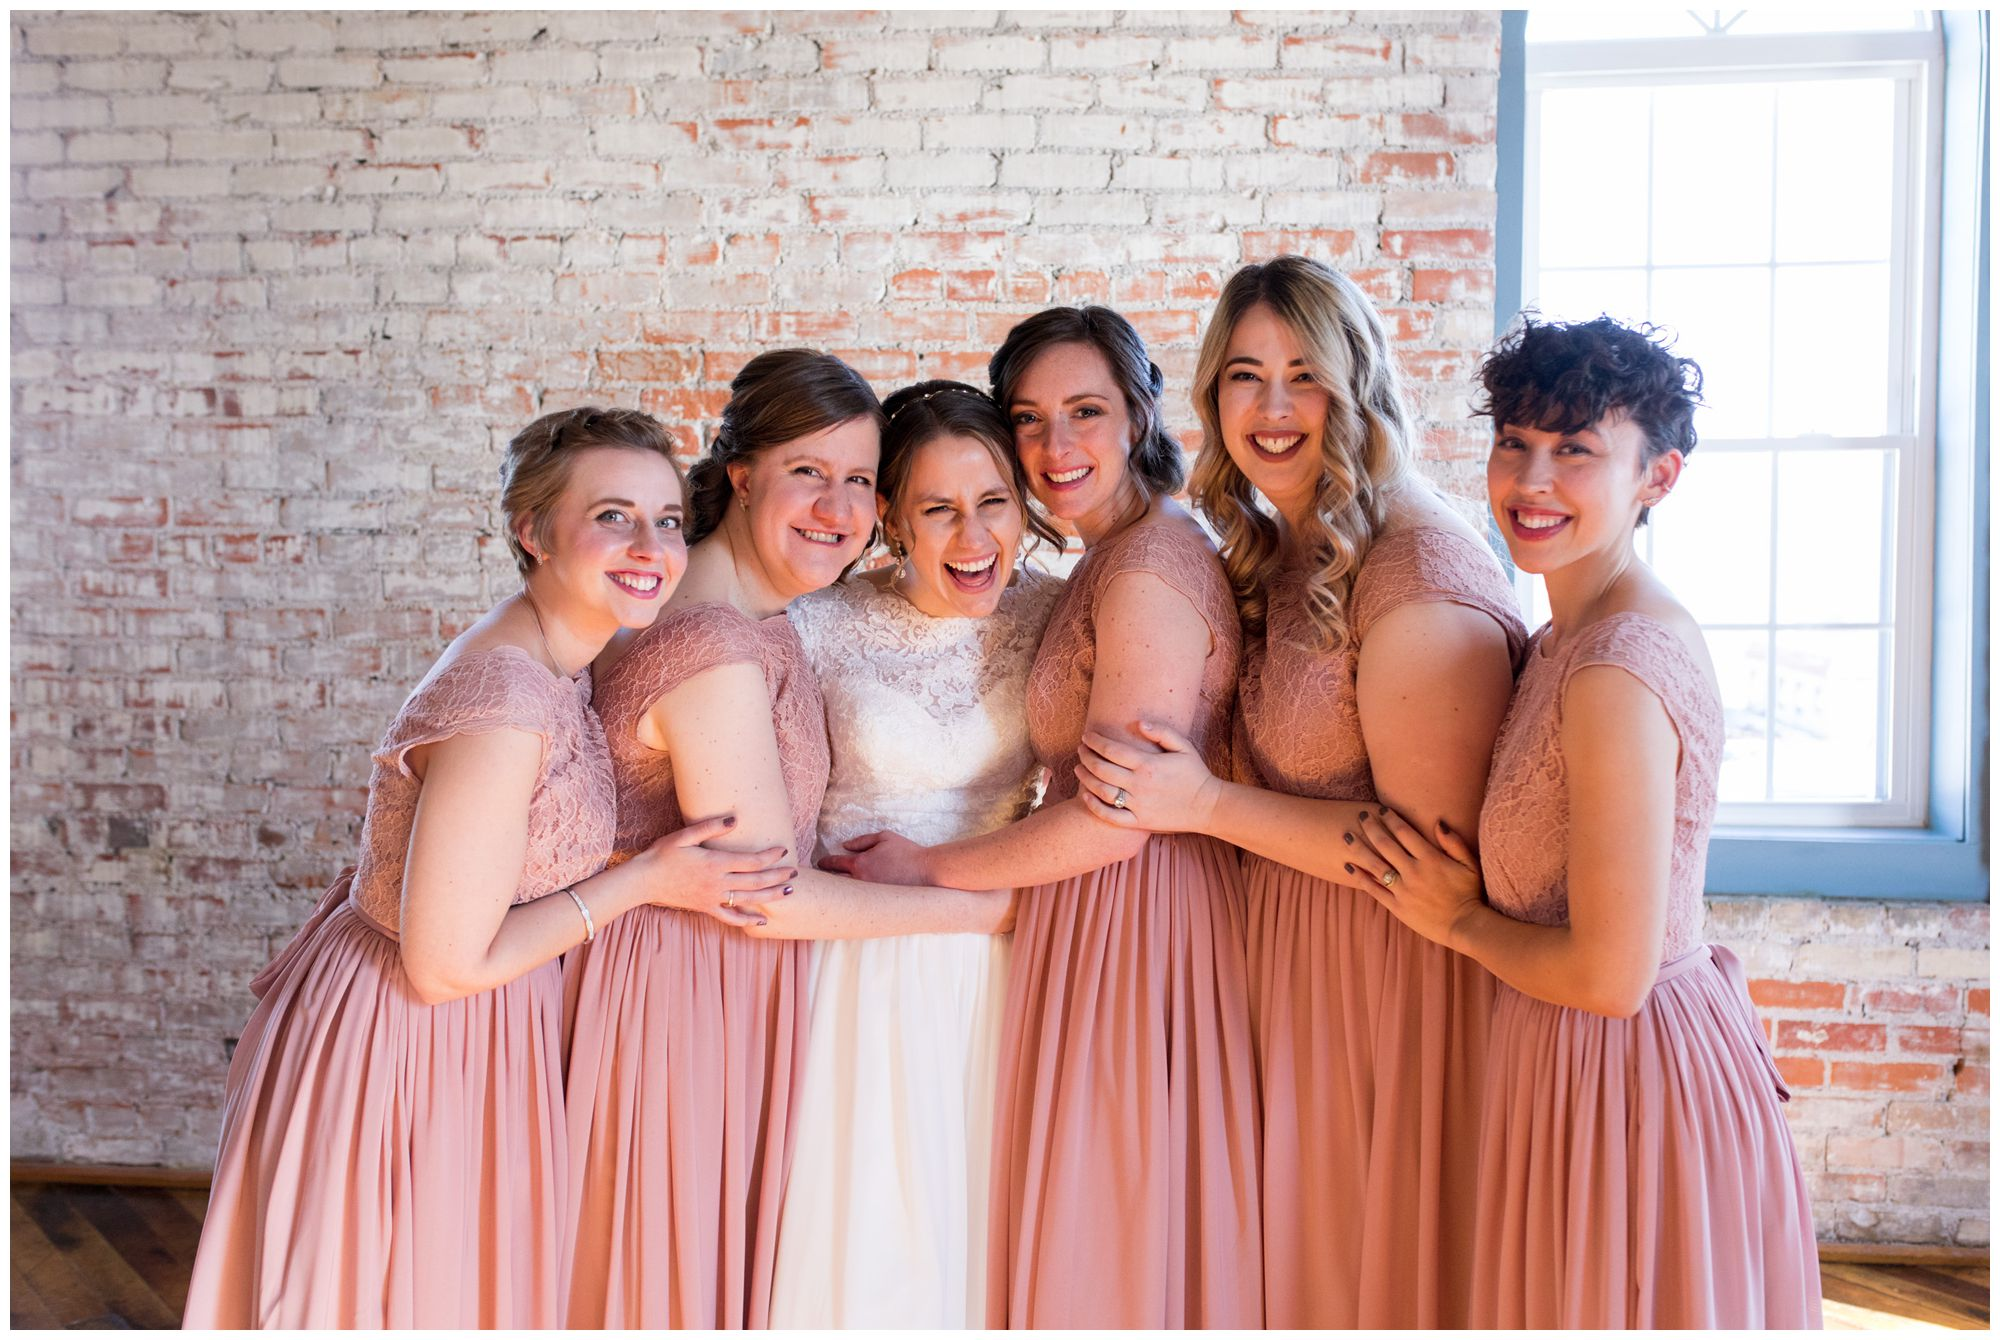 bride and bridesmaids portraits in The Gallery at Bread & Chocolate in Goshen